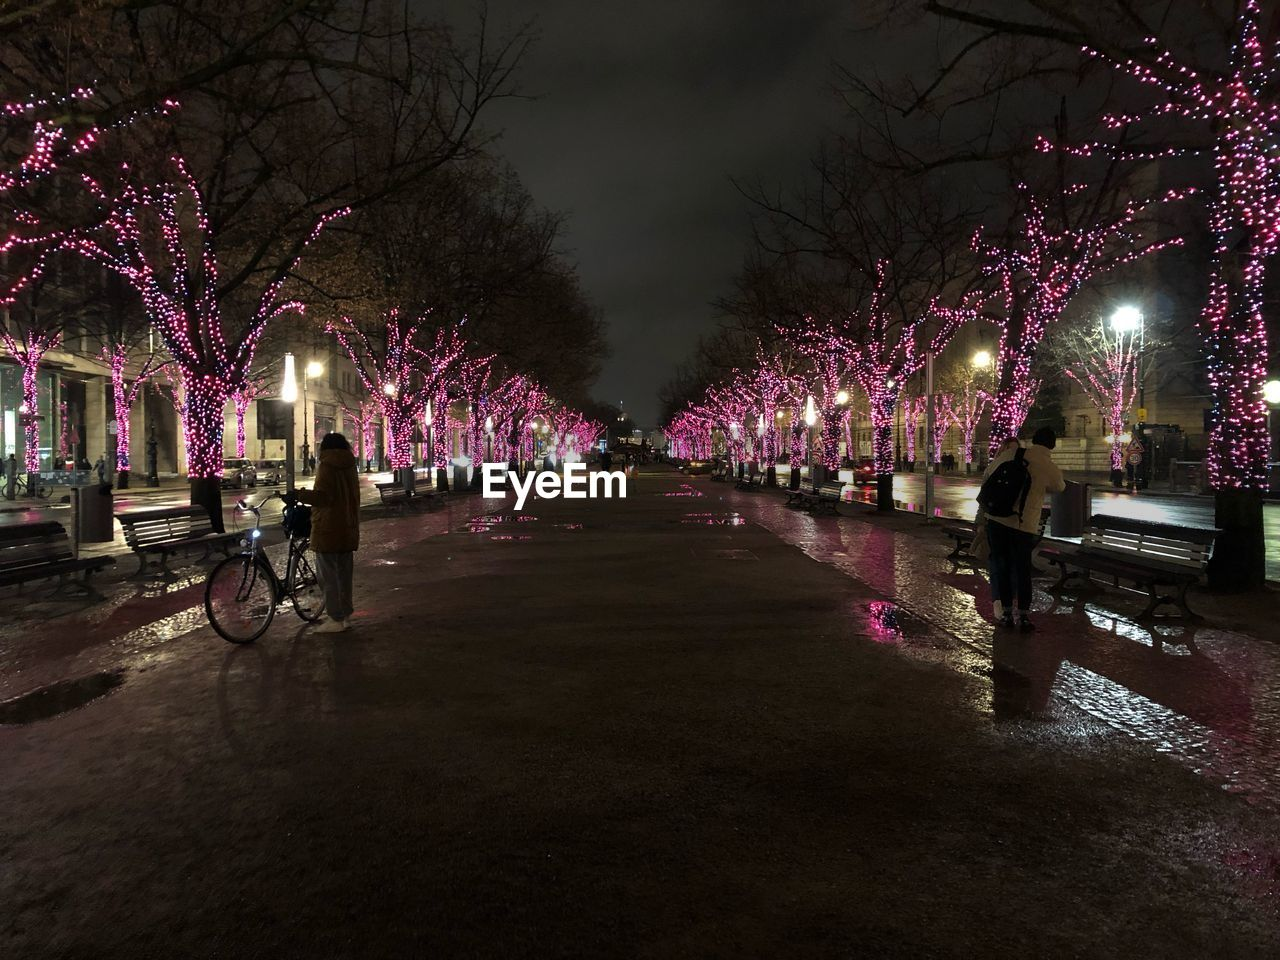 illuminated, tree, night, plant, direction, the way forward, lighting equipment, decoration, diminishing perspective, nature, transportation, no people, architecture, street, city, park, land vehicle, bare tree, footpath, in a row, outdoors, light, treelined